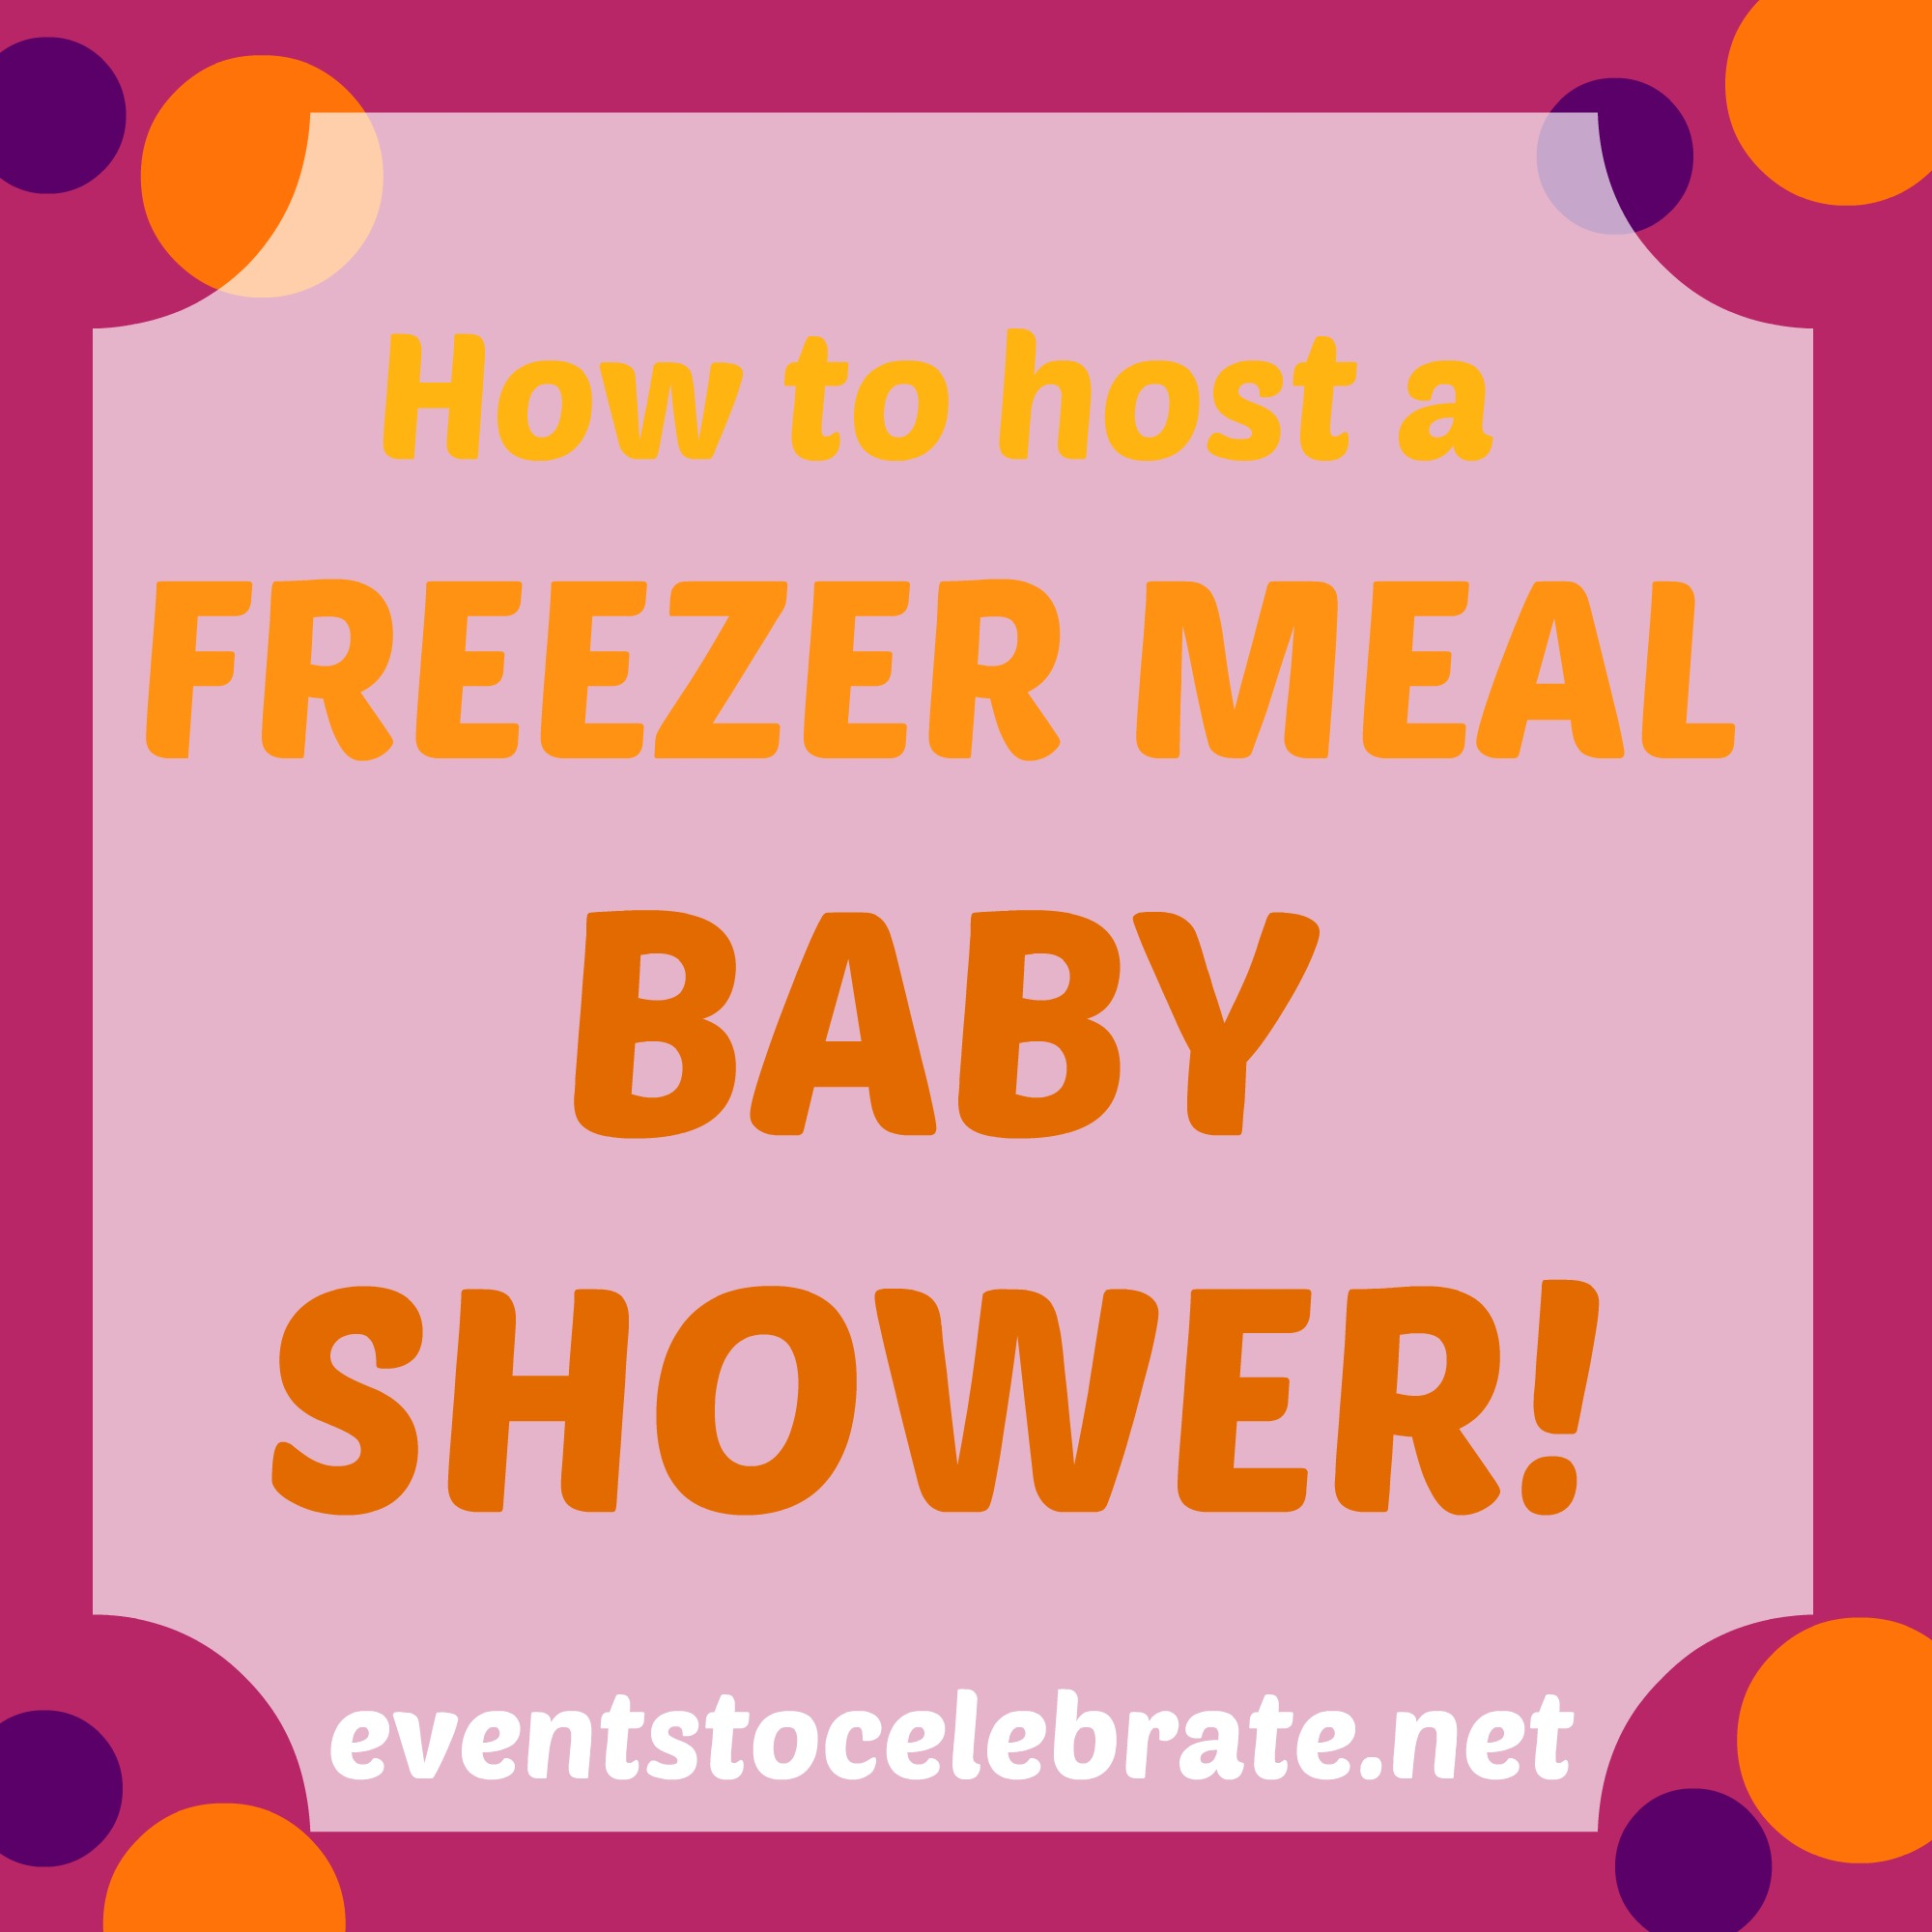 Freezer Meal Baby Shower - events to CELEBRATE!